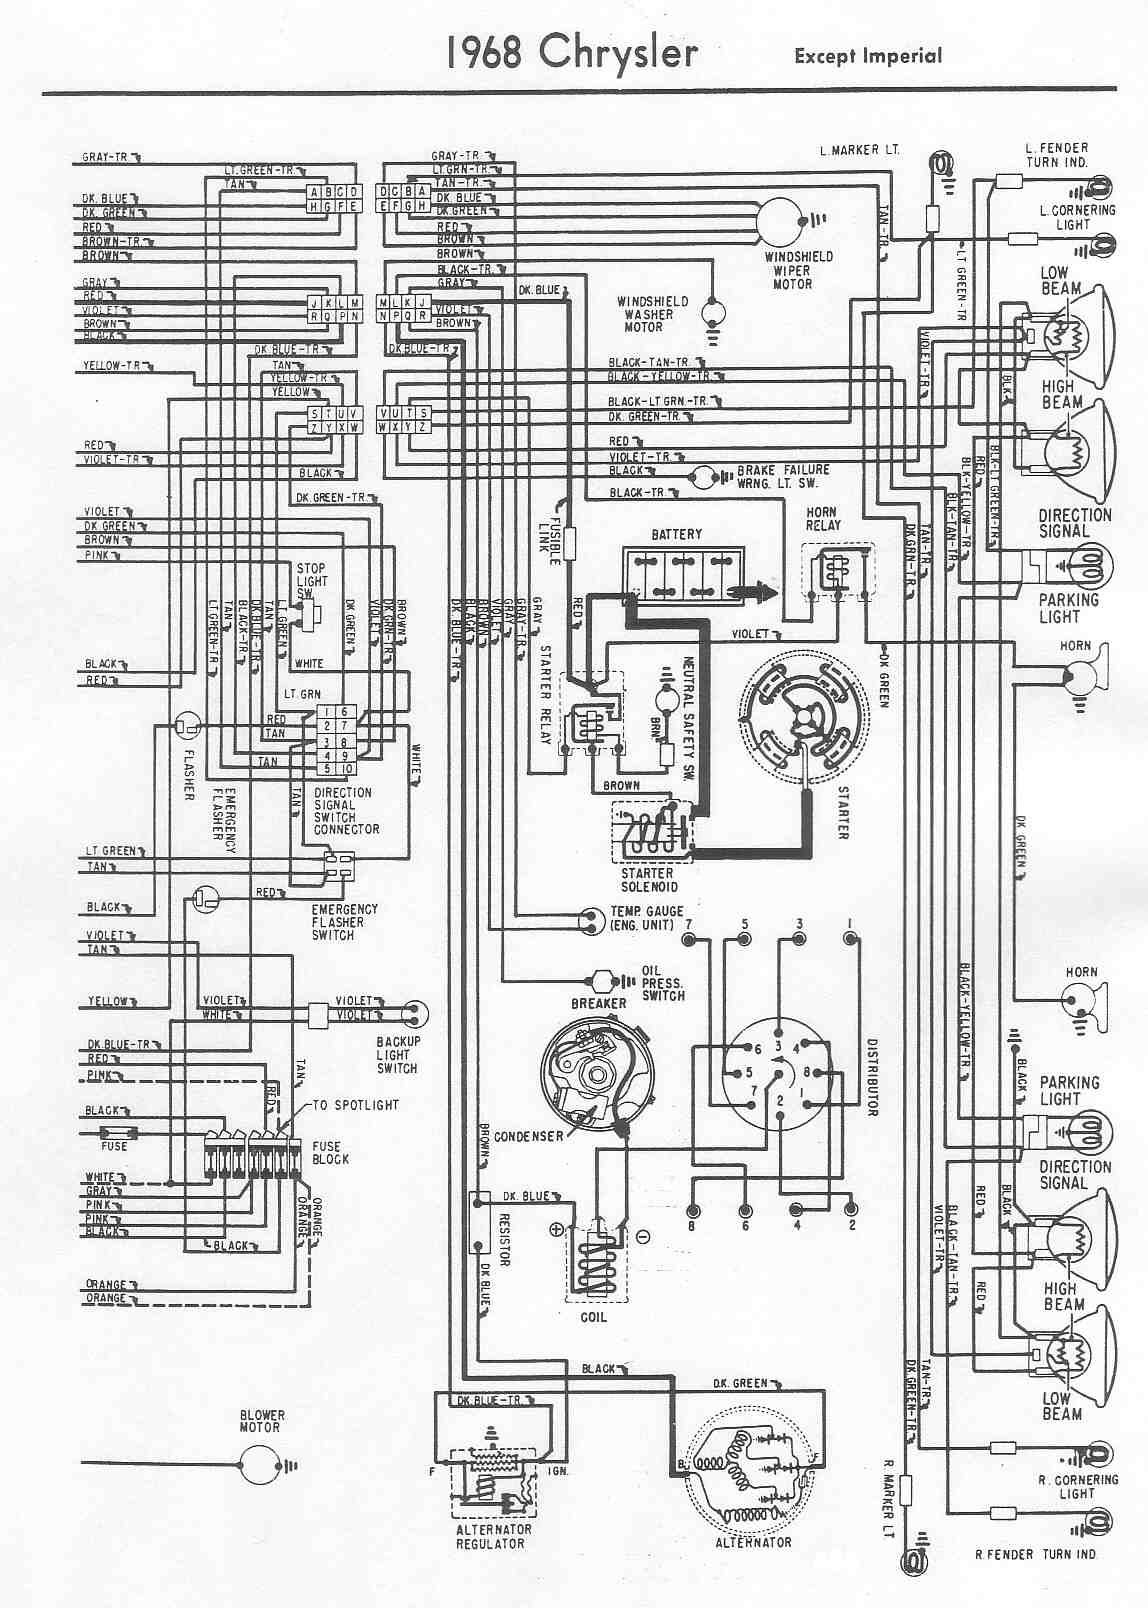 hight resolution of wiring diagram in addition 1972 chevy c10 wiring diagram on 68 68 chevelle wiring schematic 1966 gto wiring schematic